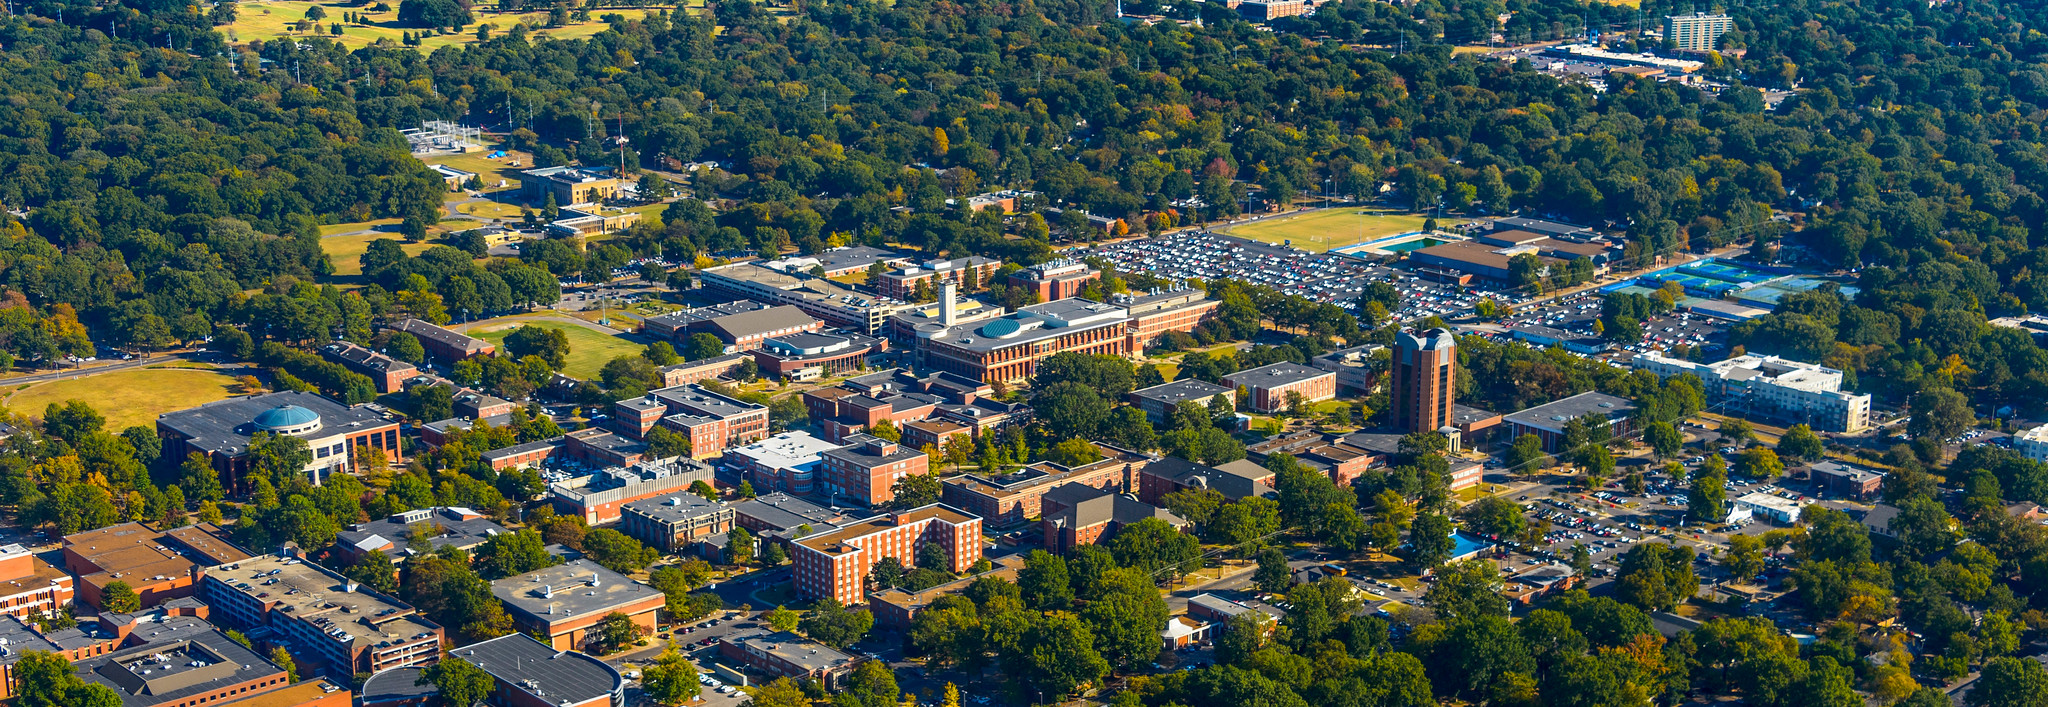 Aerial View of UofM Campus